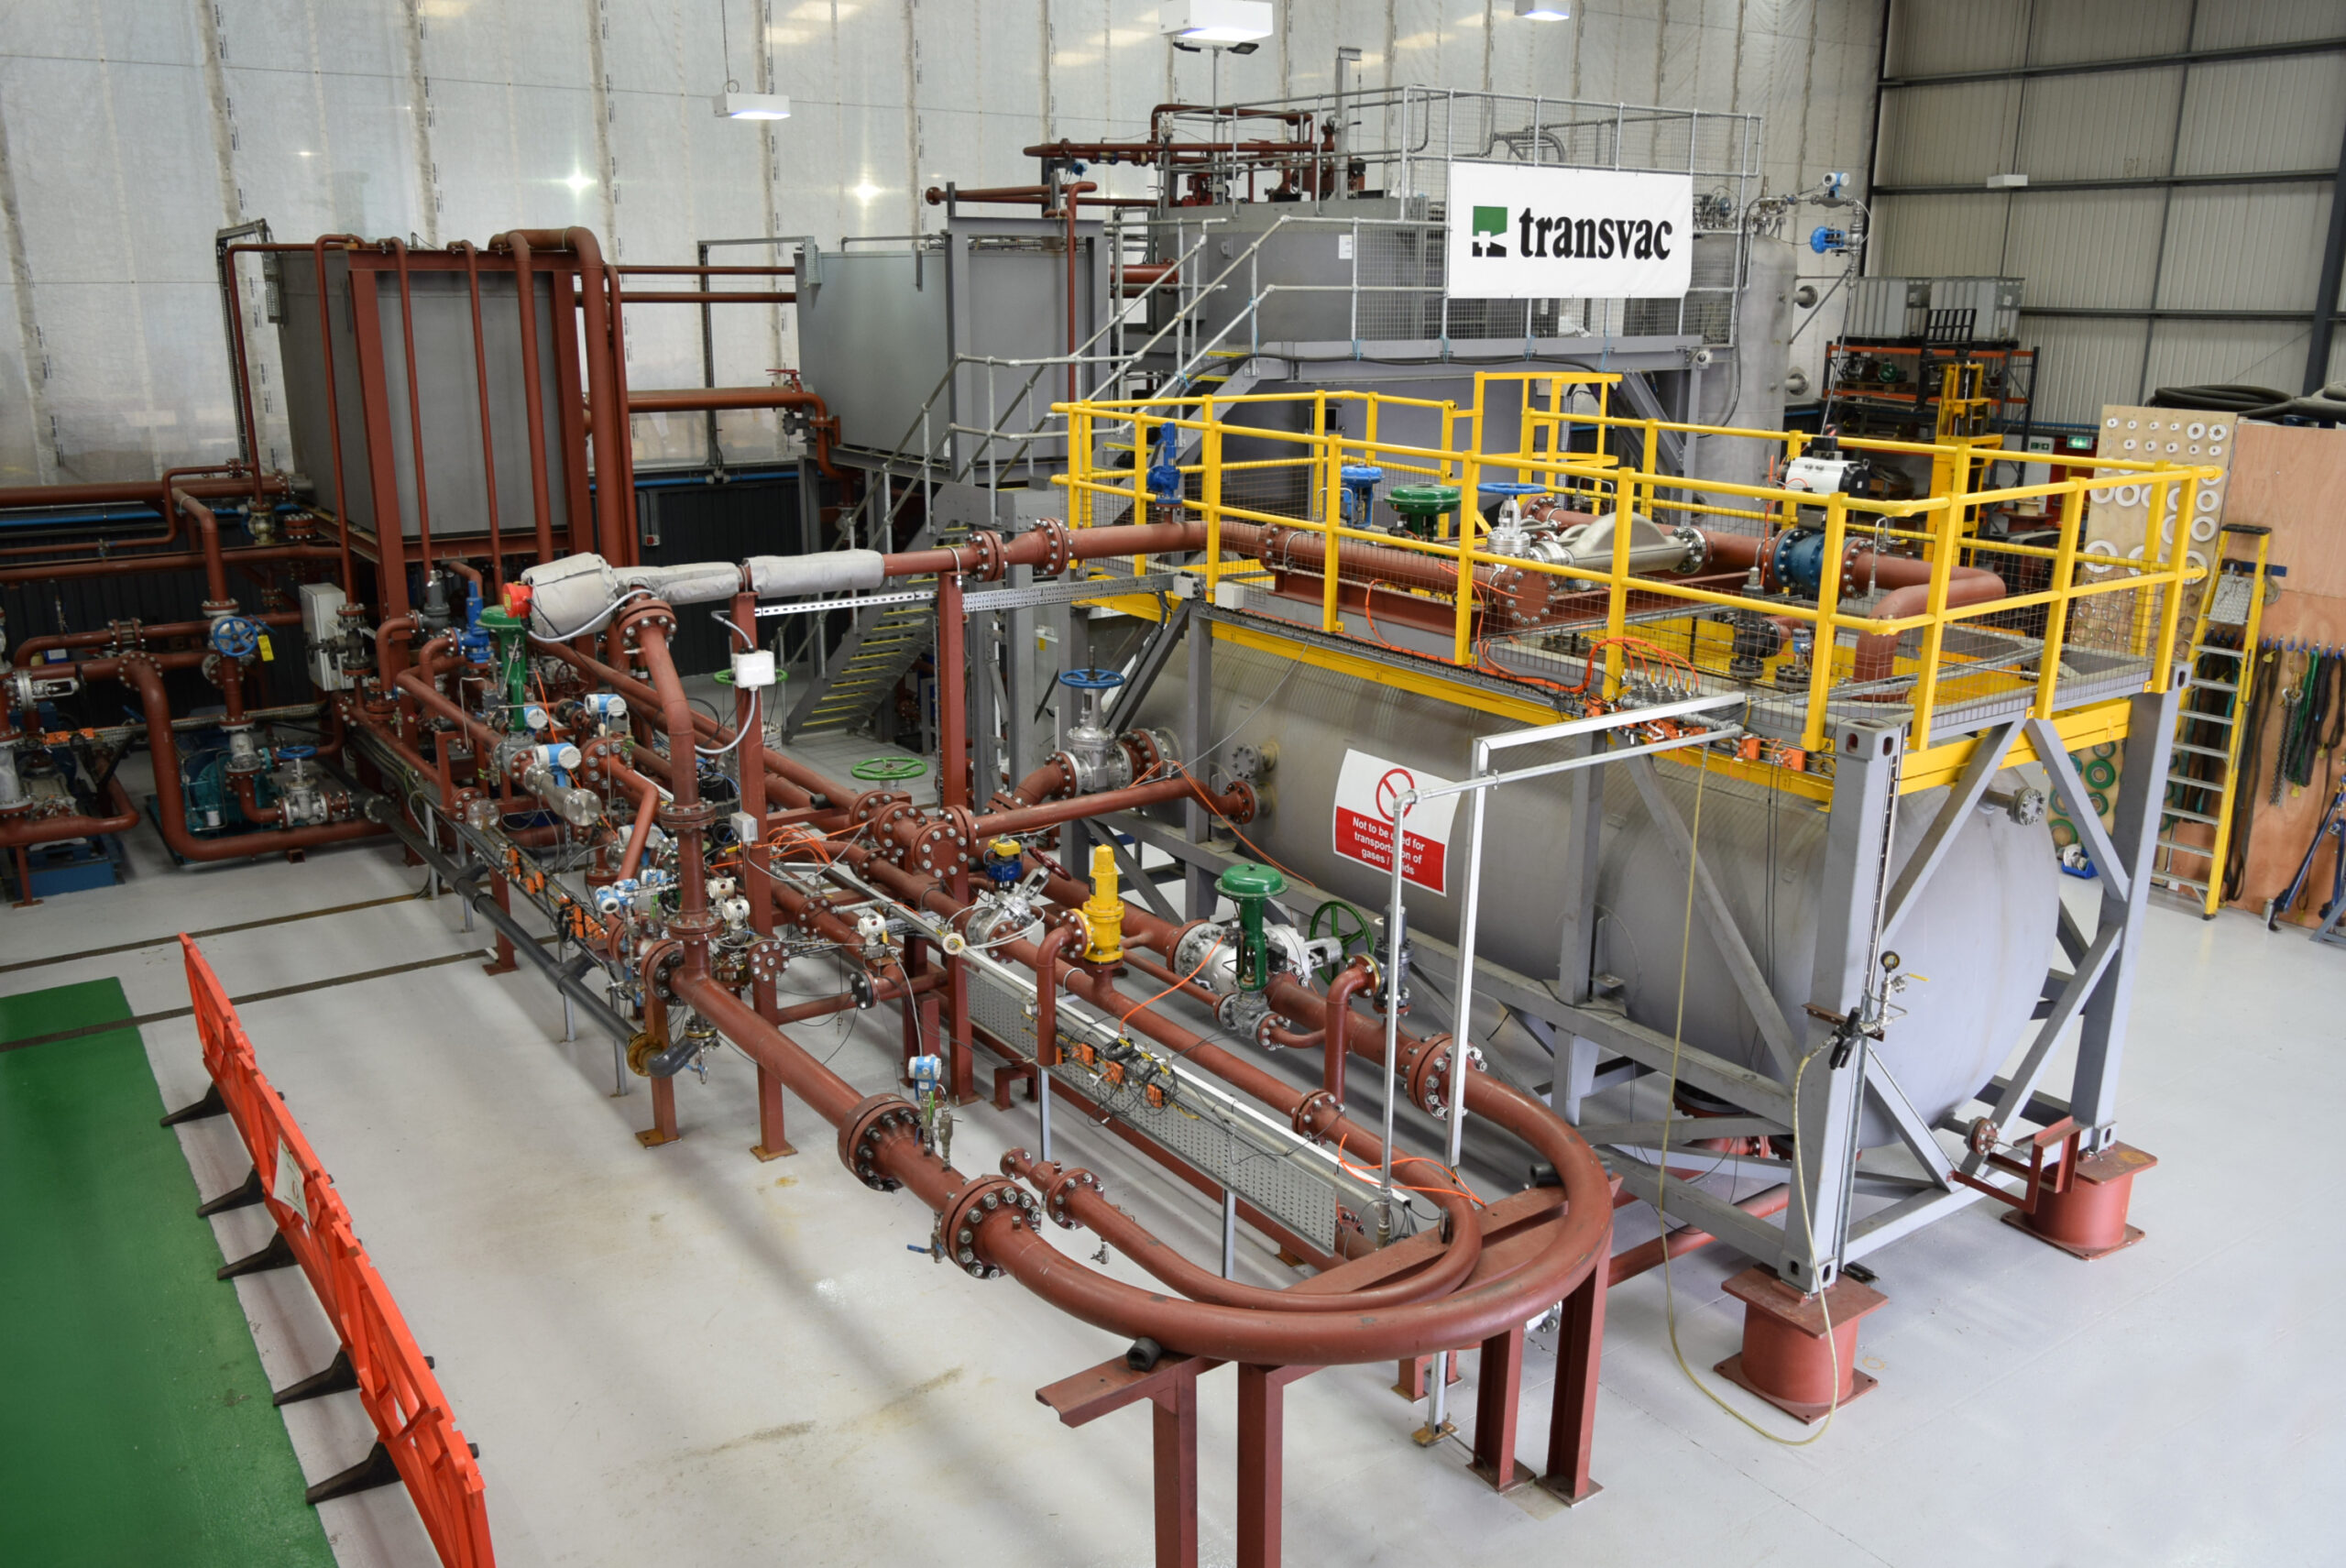 Transvac's Ejector Test Facility